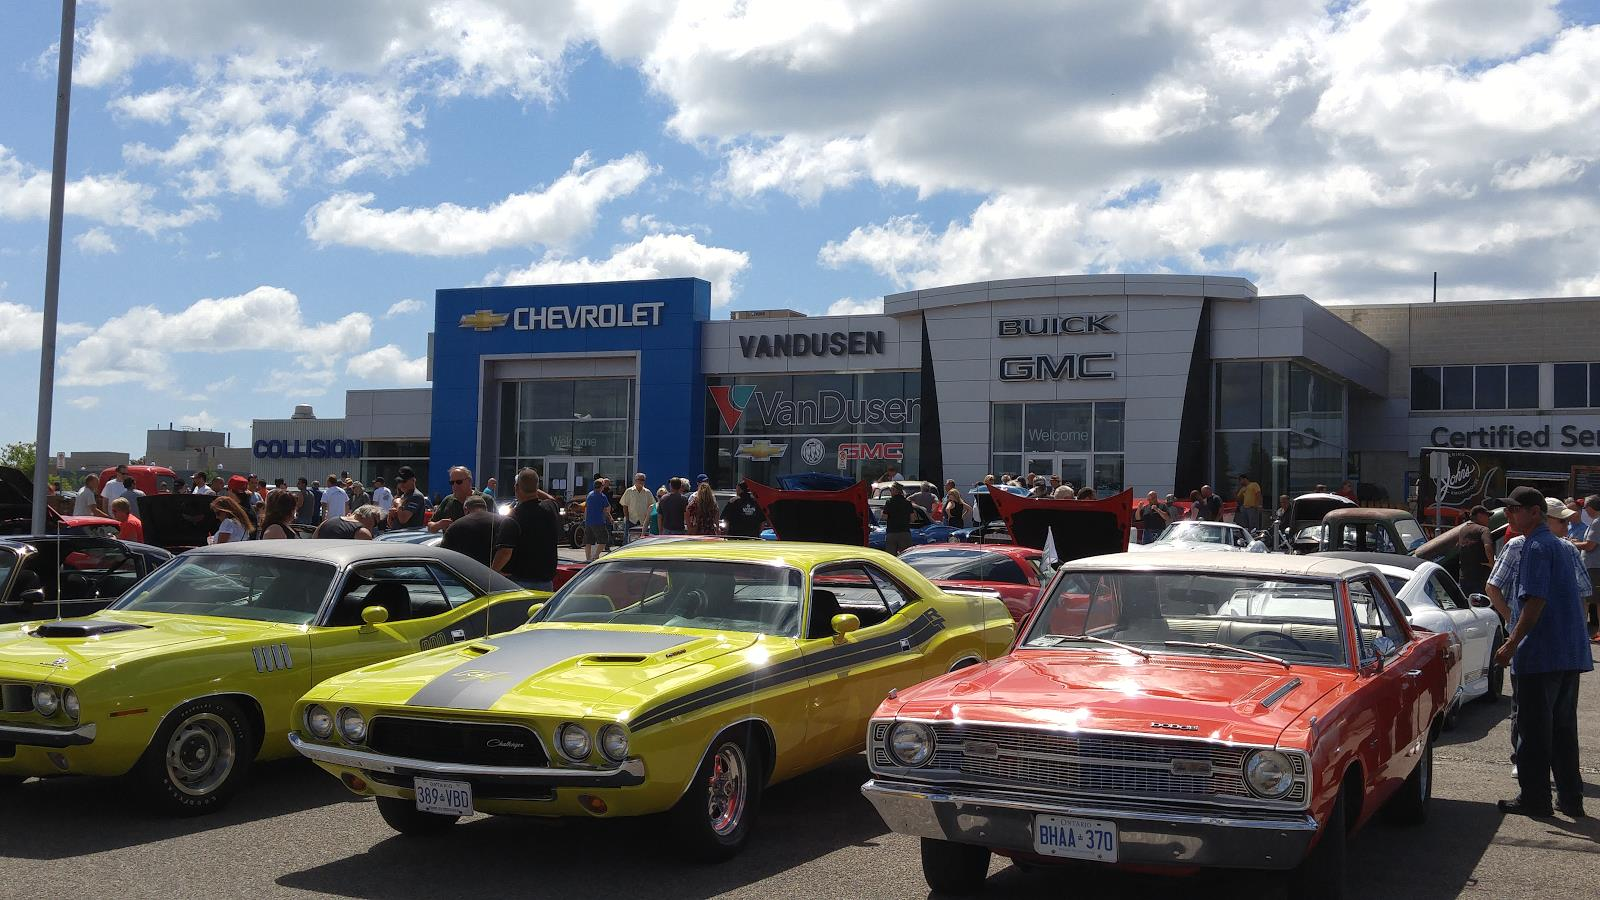 Vandusen Chevrolet Buick Gmc In Ajax On